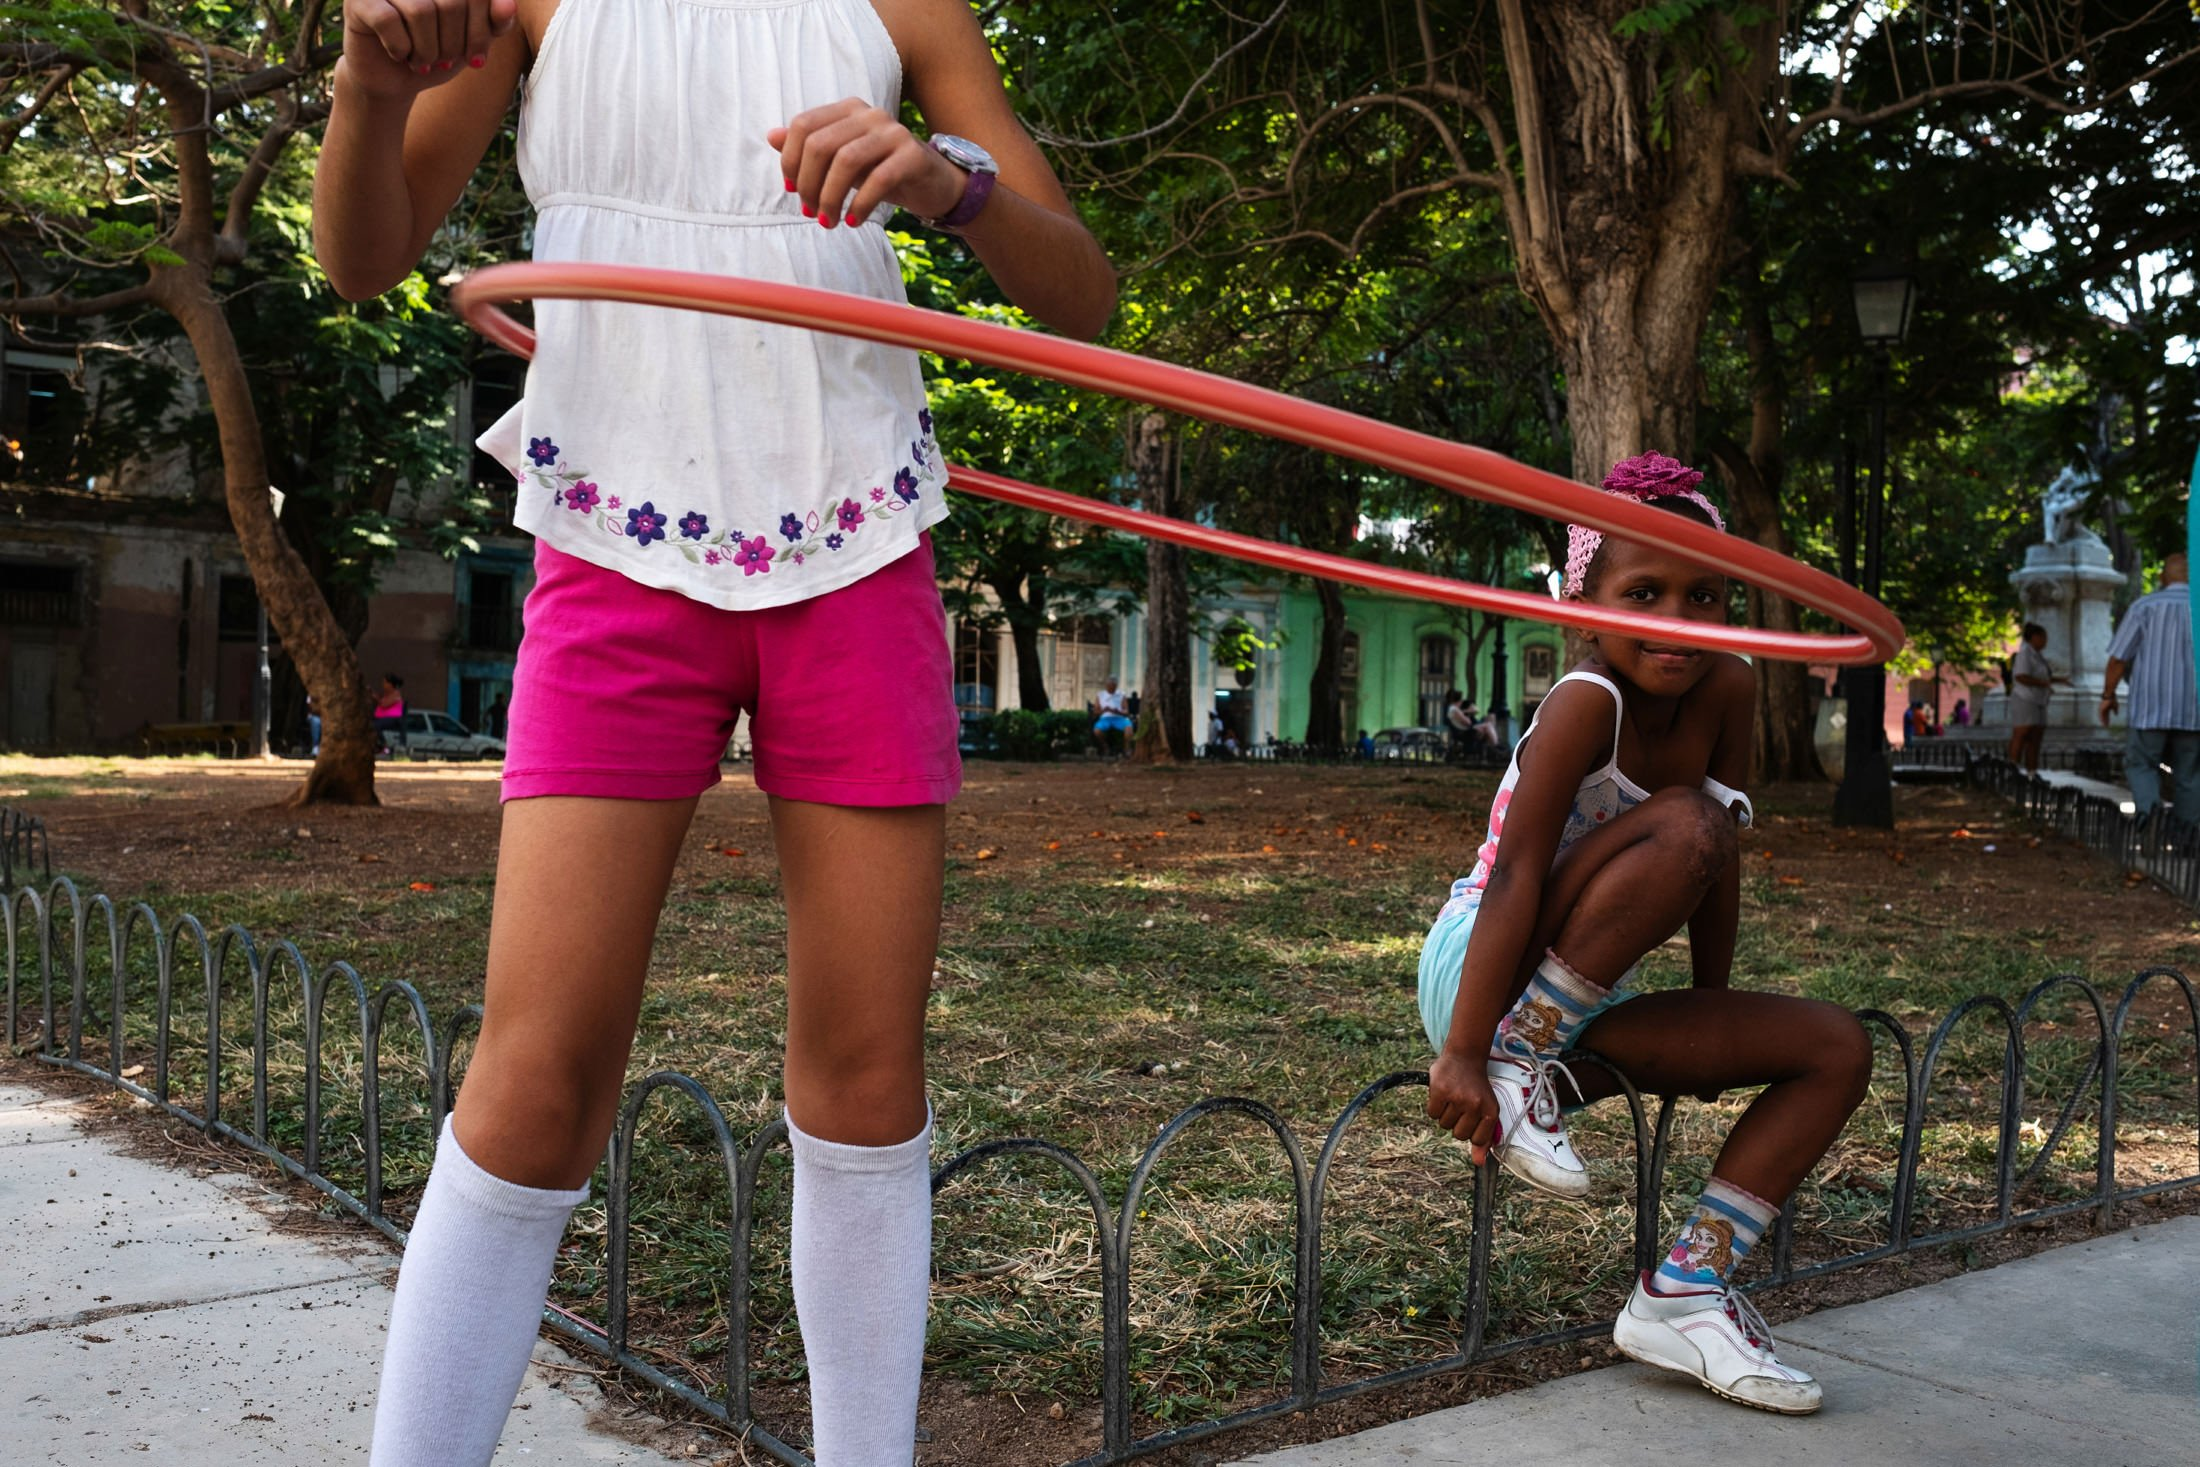 a child playing with a hulla hoop, another girls face framed in the hoop